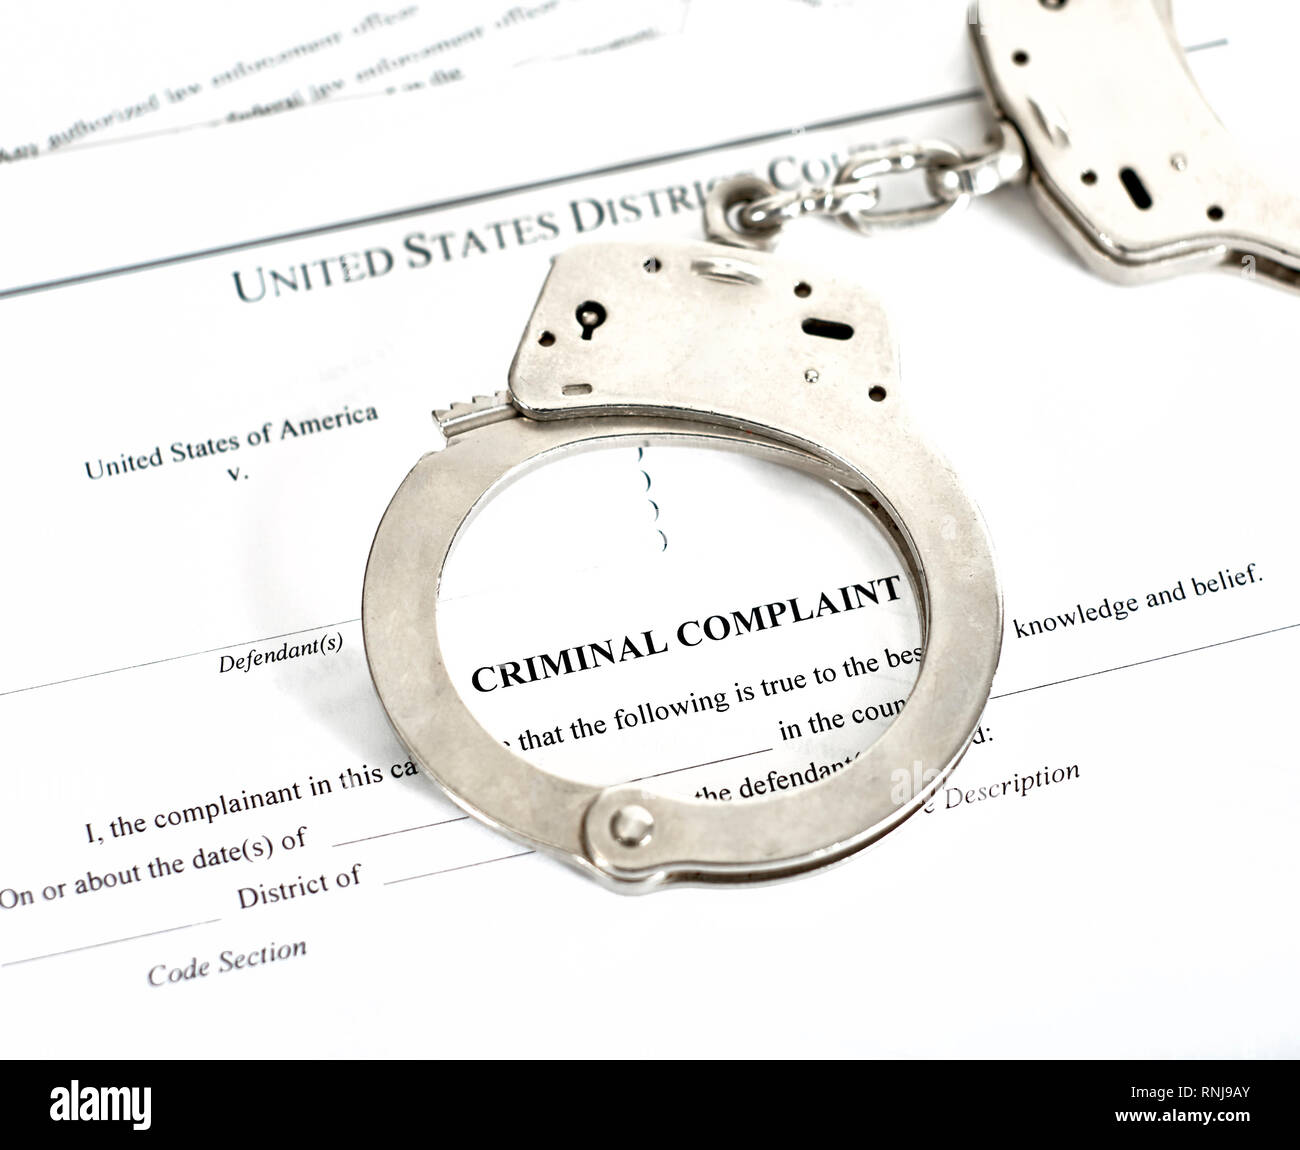 District Court criminal complaint, arrest warrant and search and seizure warrant doccuments with handcuffs isolated on white - Stock Image